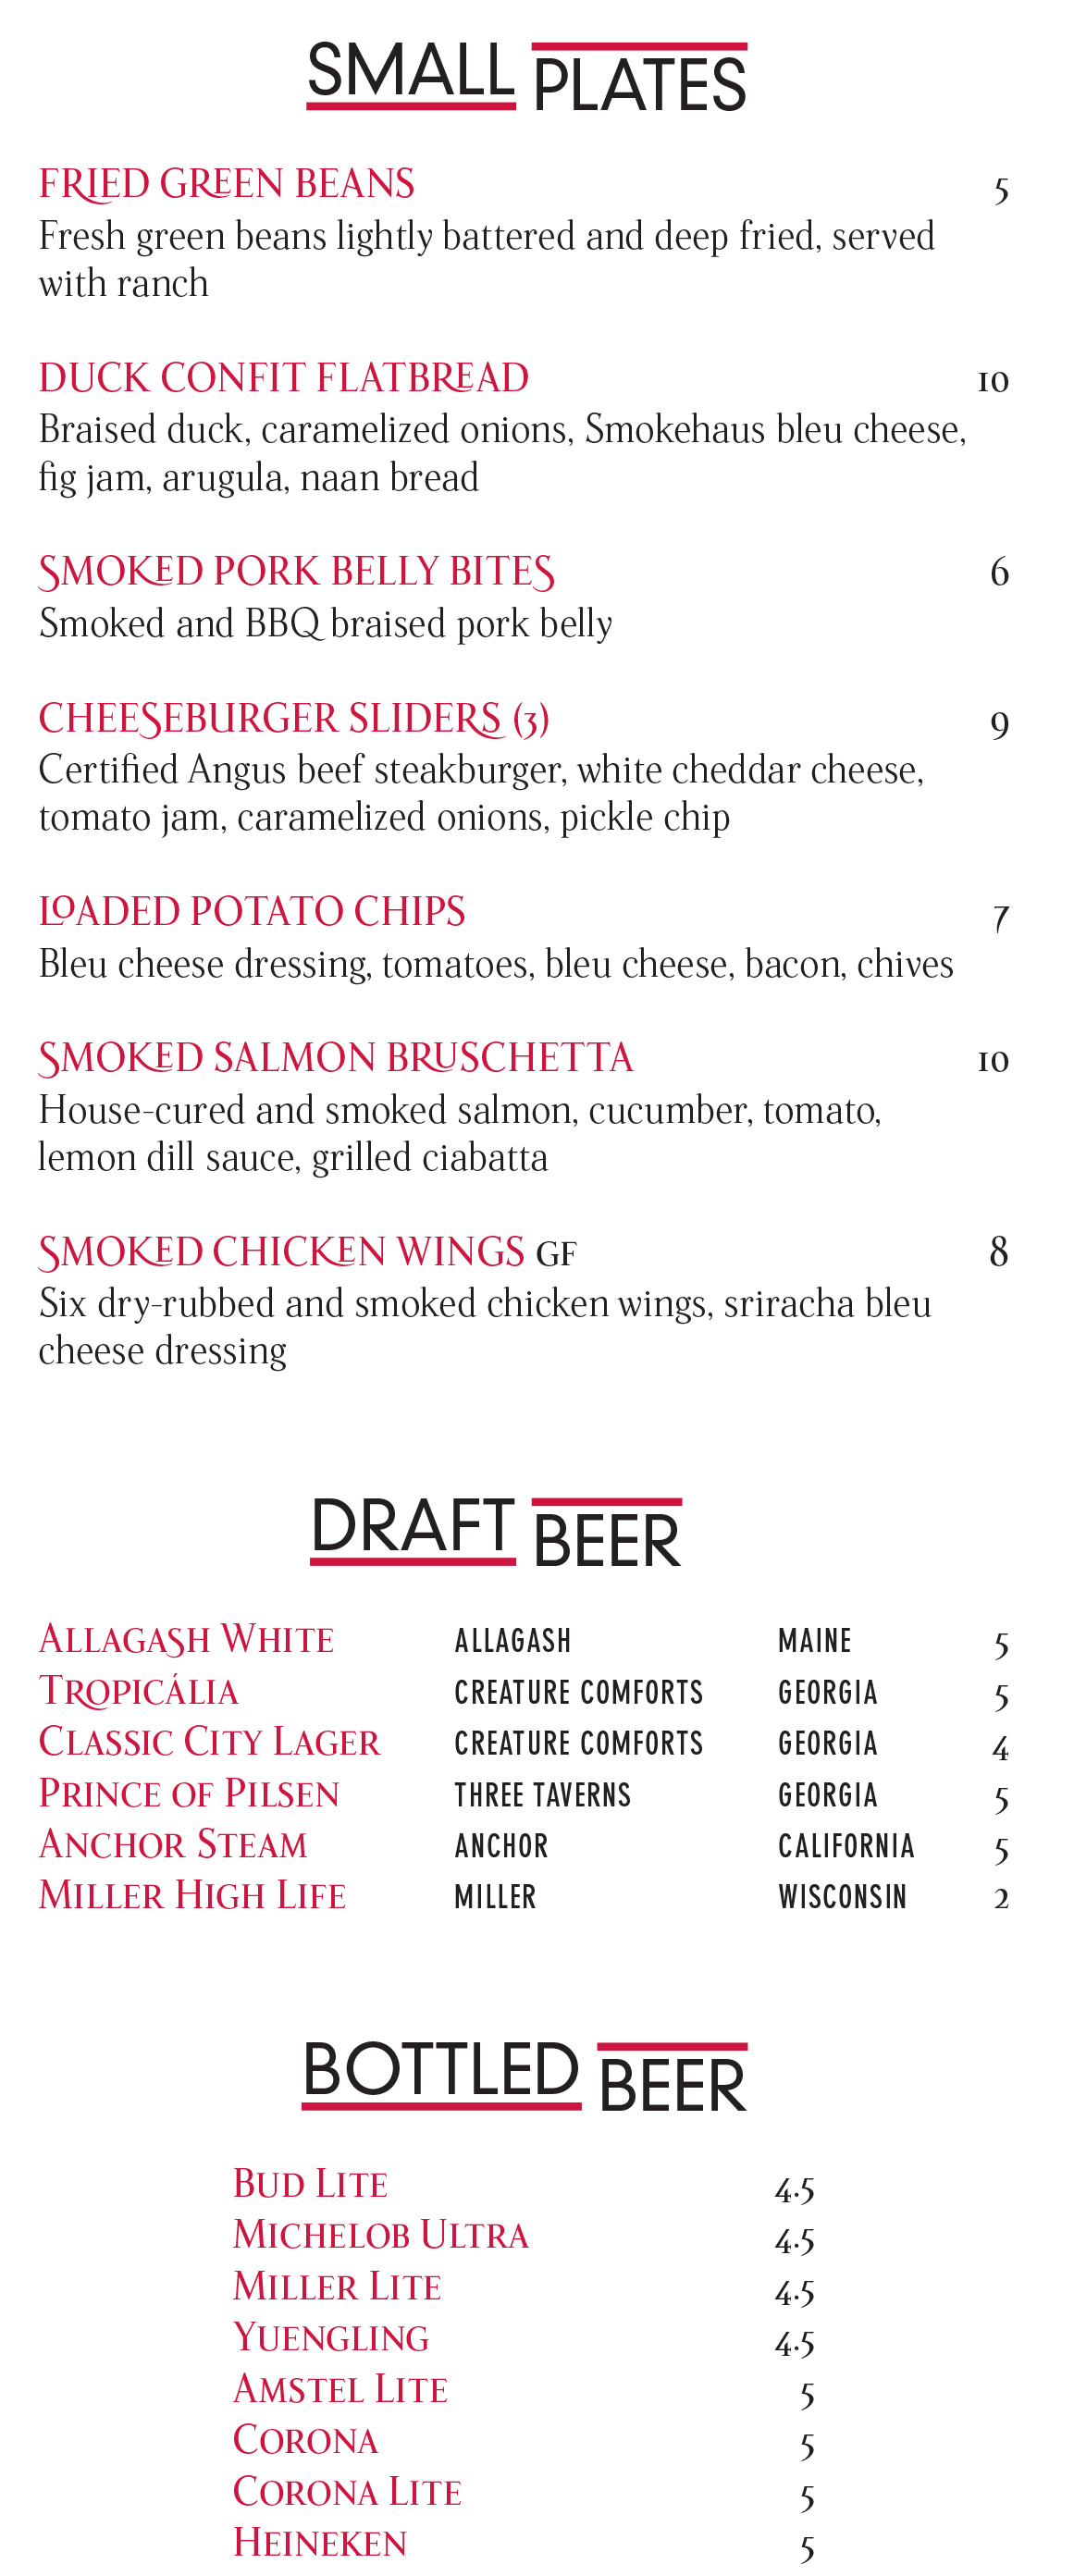 Small Plates and Draft Beer at the Georgia Center's Bulldog Bistro on UGA Campus